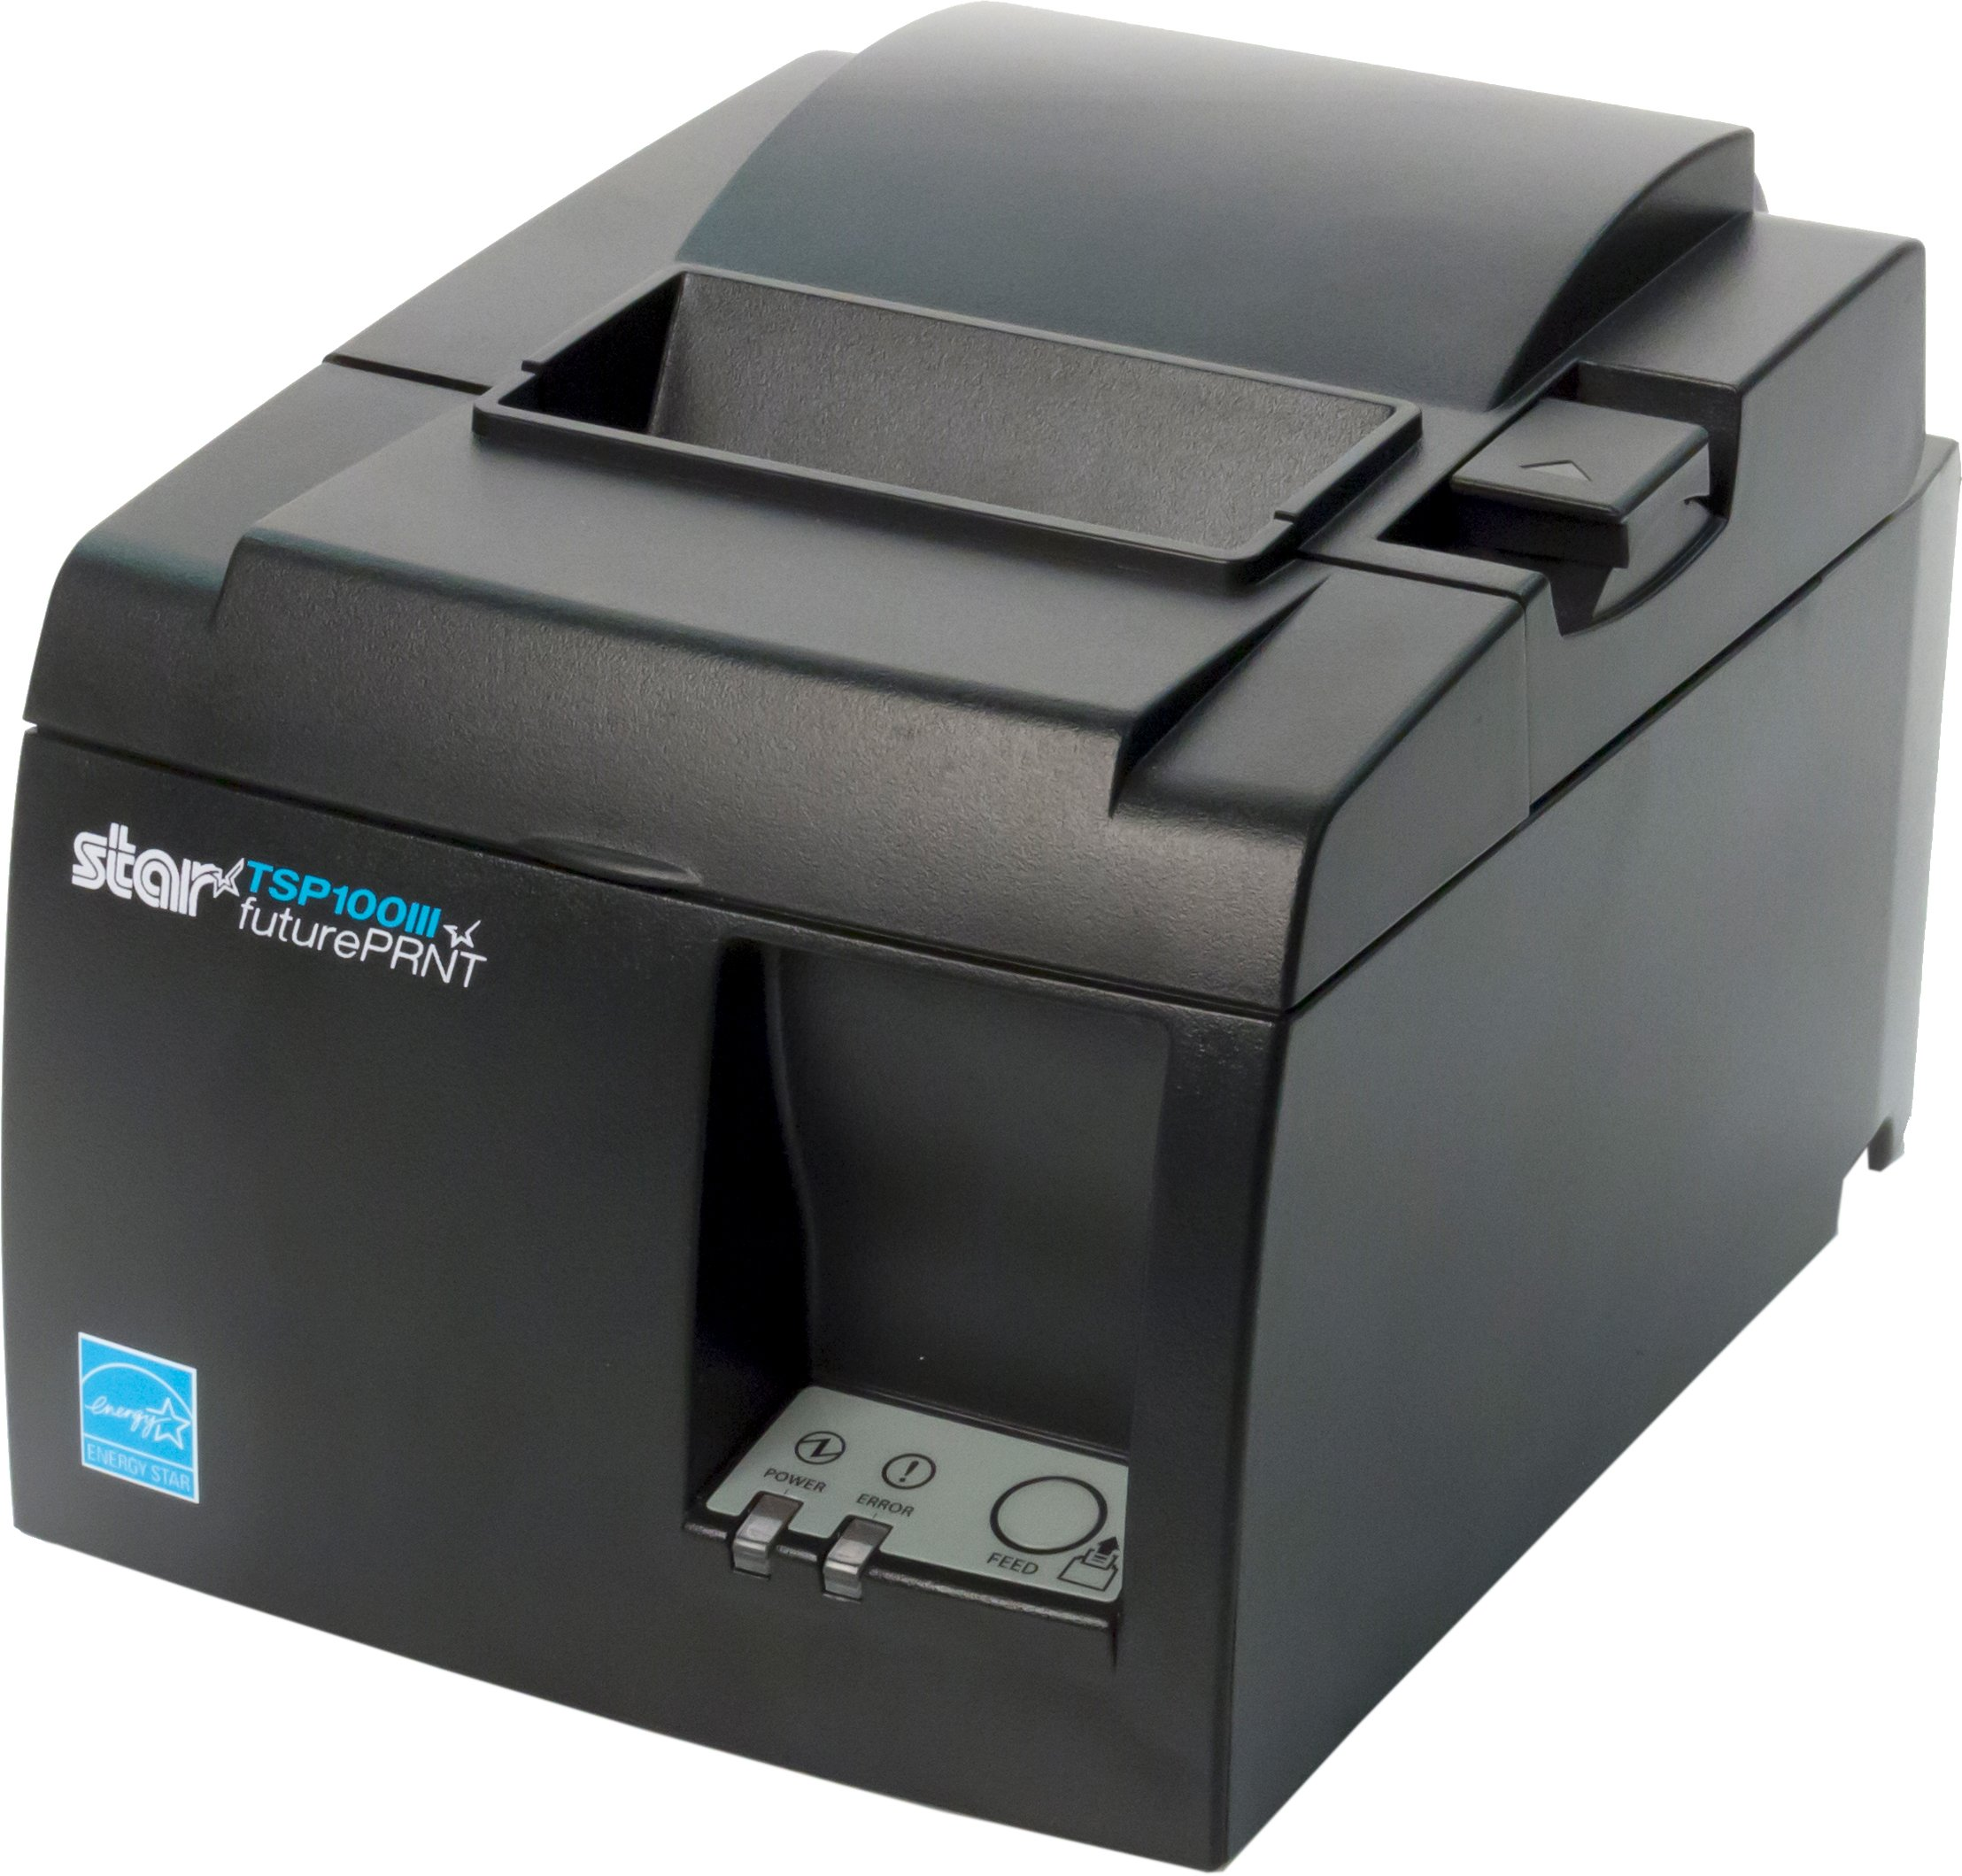 Star Micronics TSP143IIIBi Bluetooth Thermal Receipt Printer for iOS, Android, and Windows with Auto-cutter and Internal Power Supply - Gray by Star Micronics